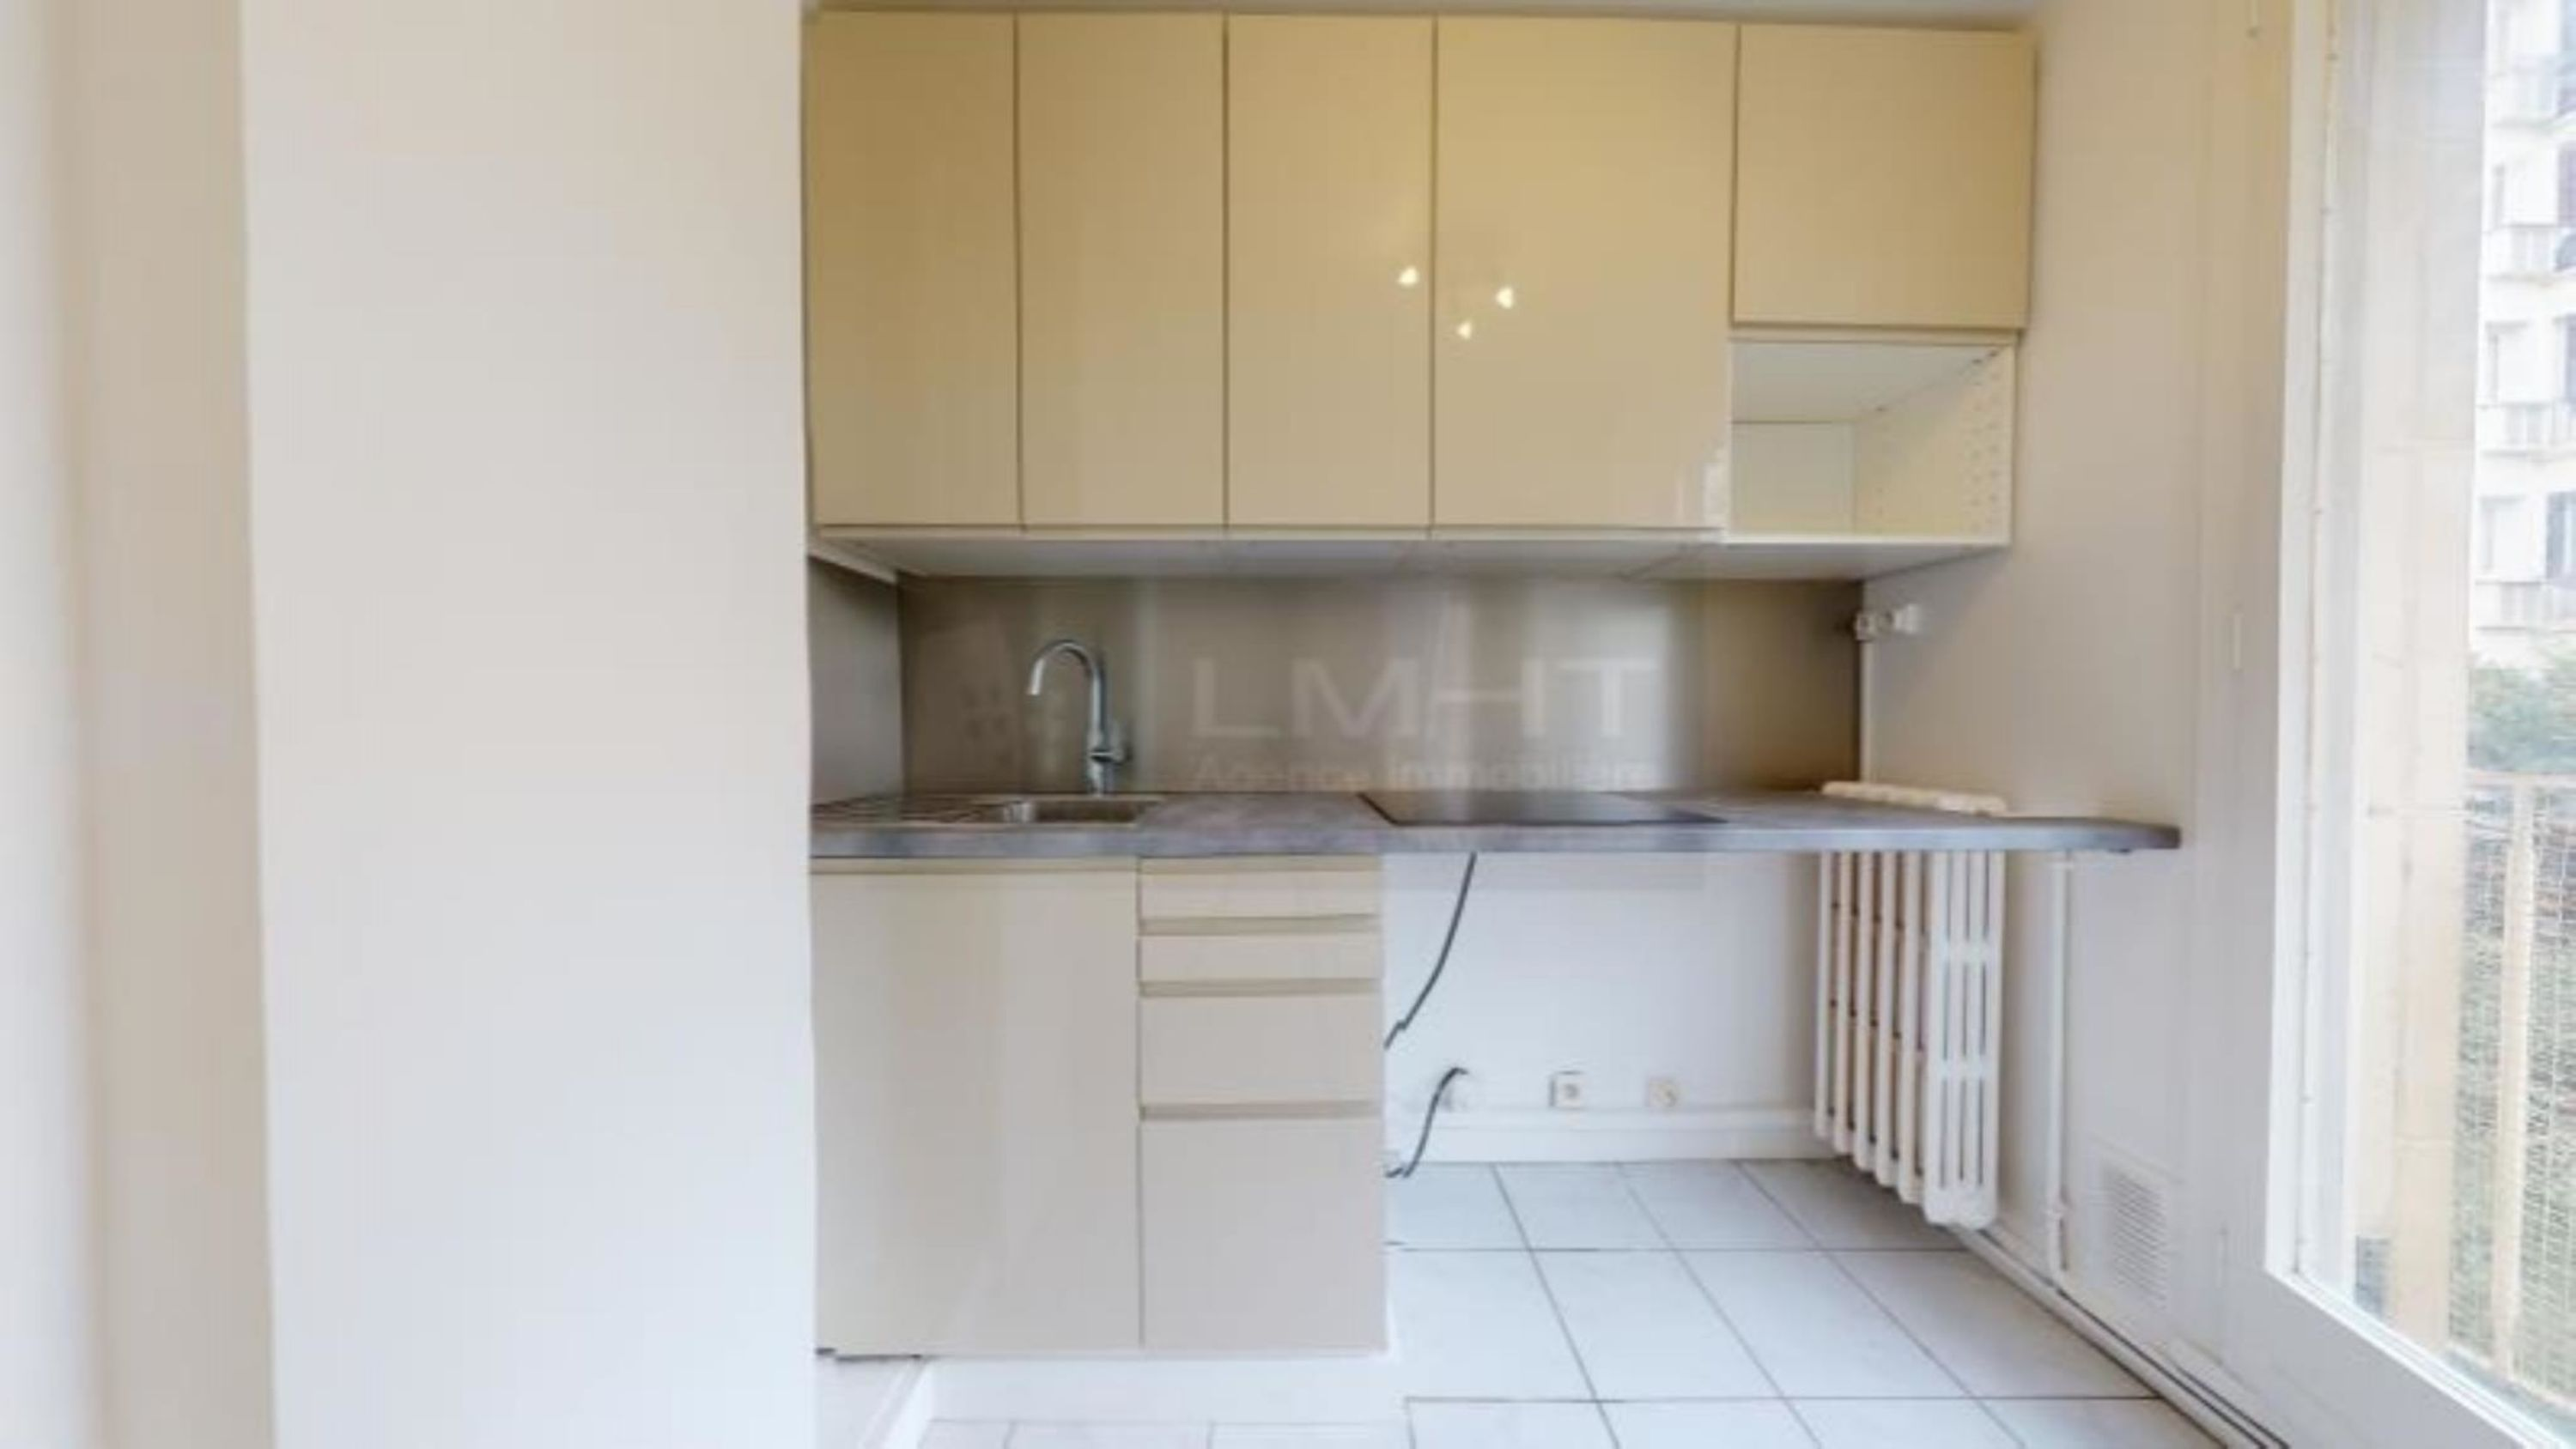 agence immobilière sevres 92 le chesnay 78 achat vente location appartement maison immobilier LMHT ANF NMQUZKFU